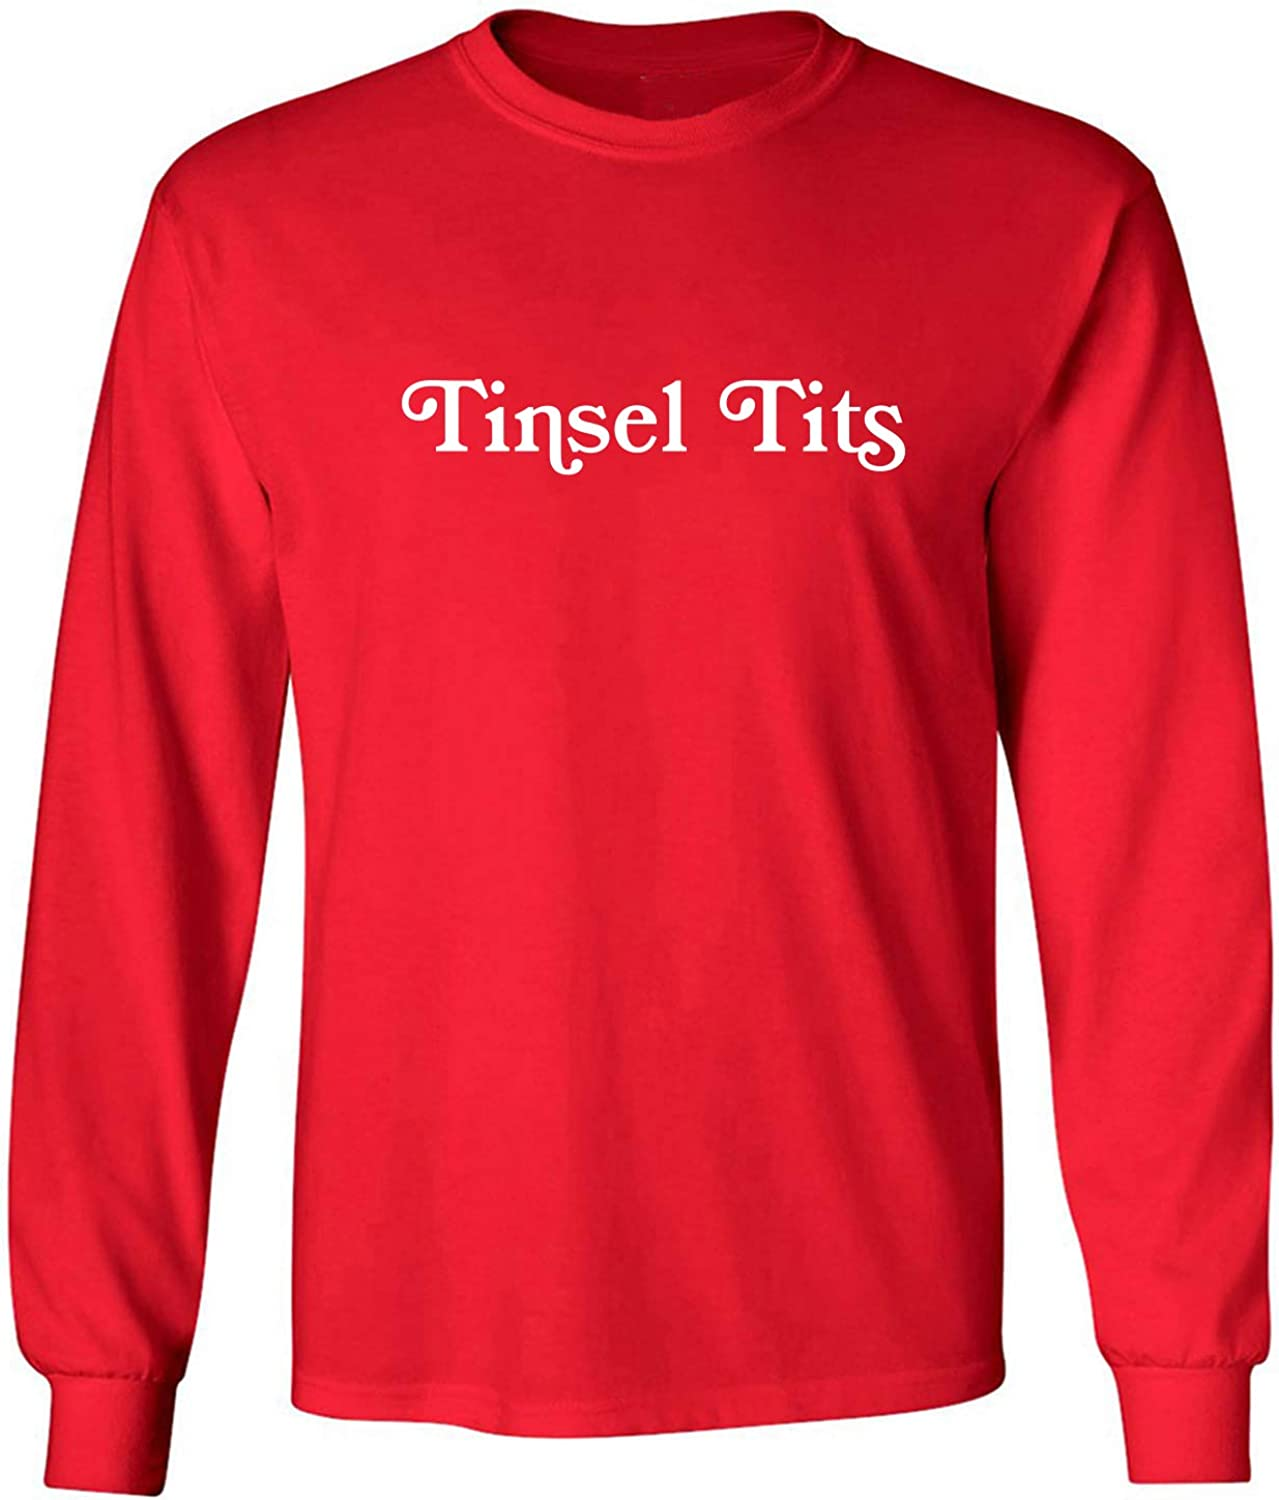 Tinsel Tits Adult Long Sleeve T-Shirt in Red - XXX-Large